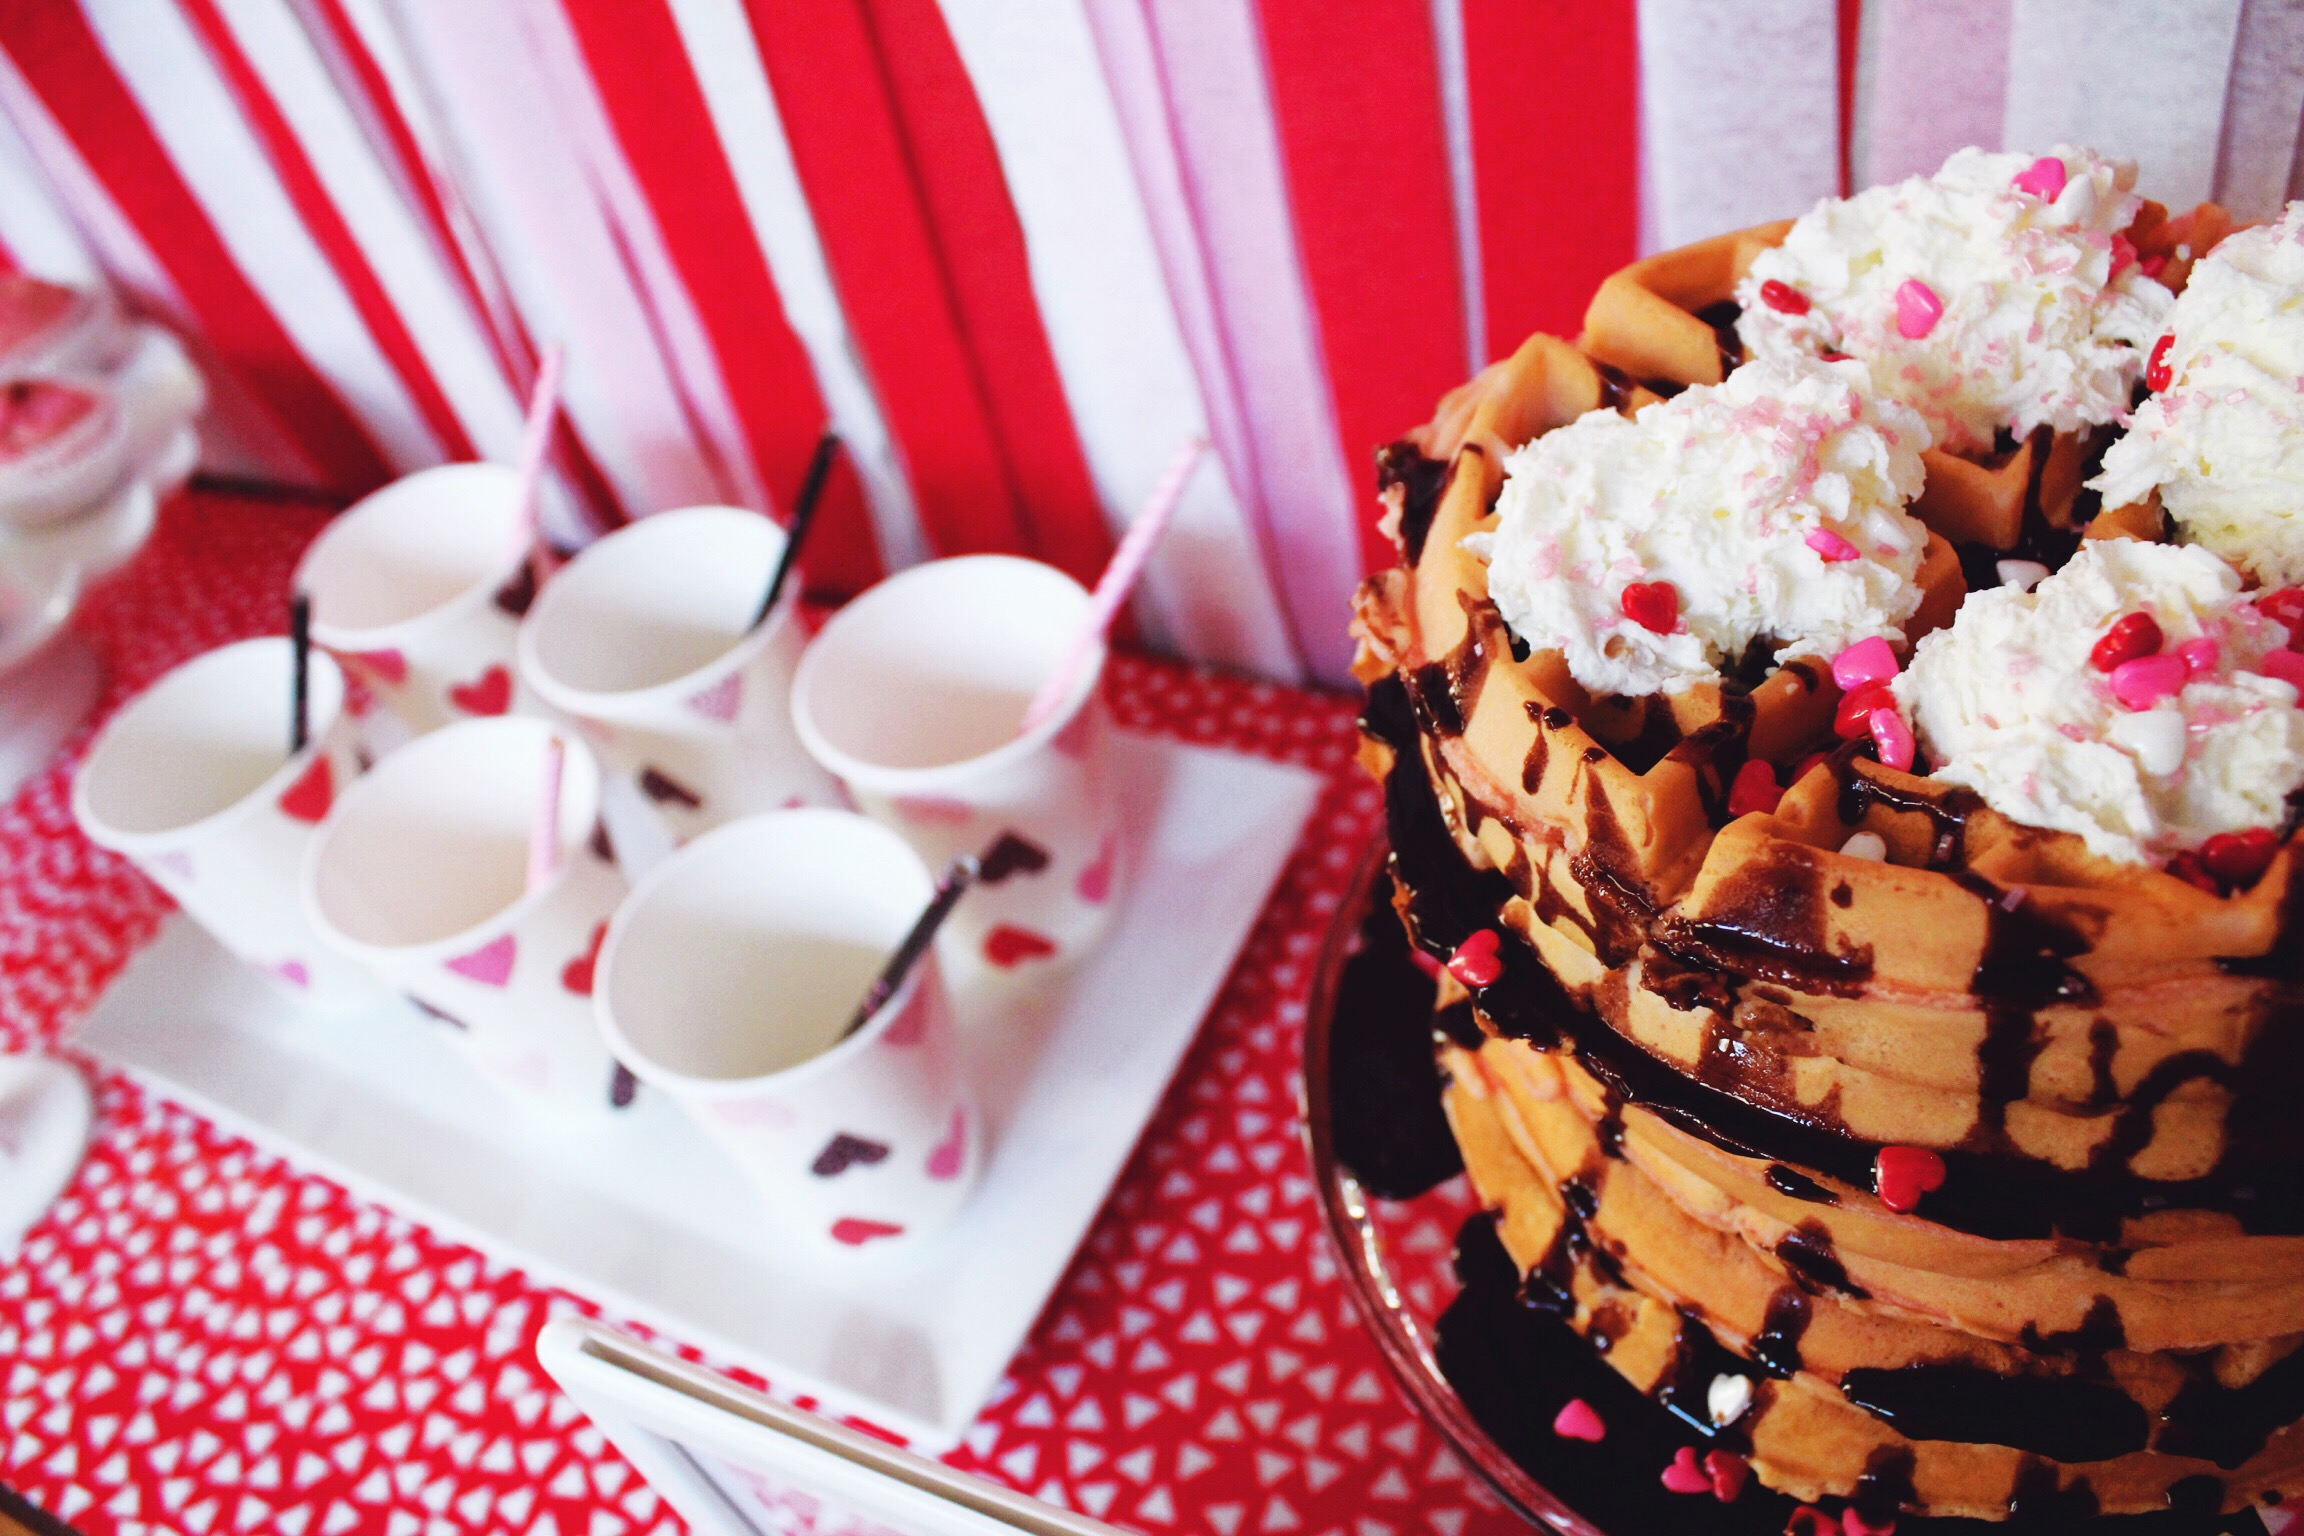 Valentine's Day Breakfast Party Inspiration_Waffles_Whipped Cream_Design Organize Party.JPG